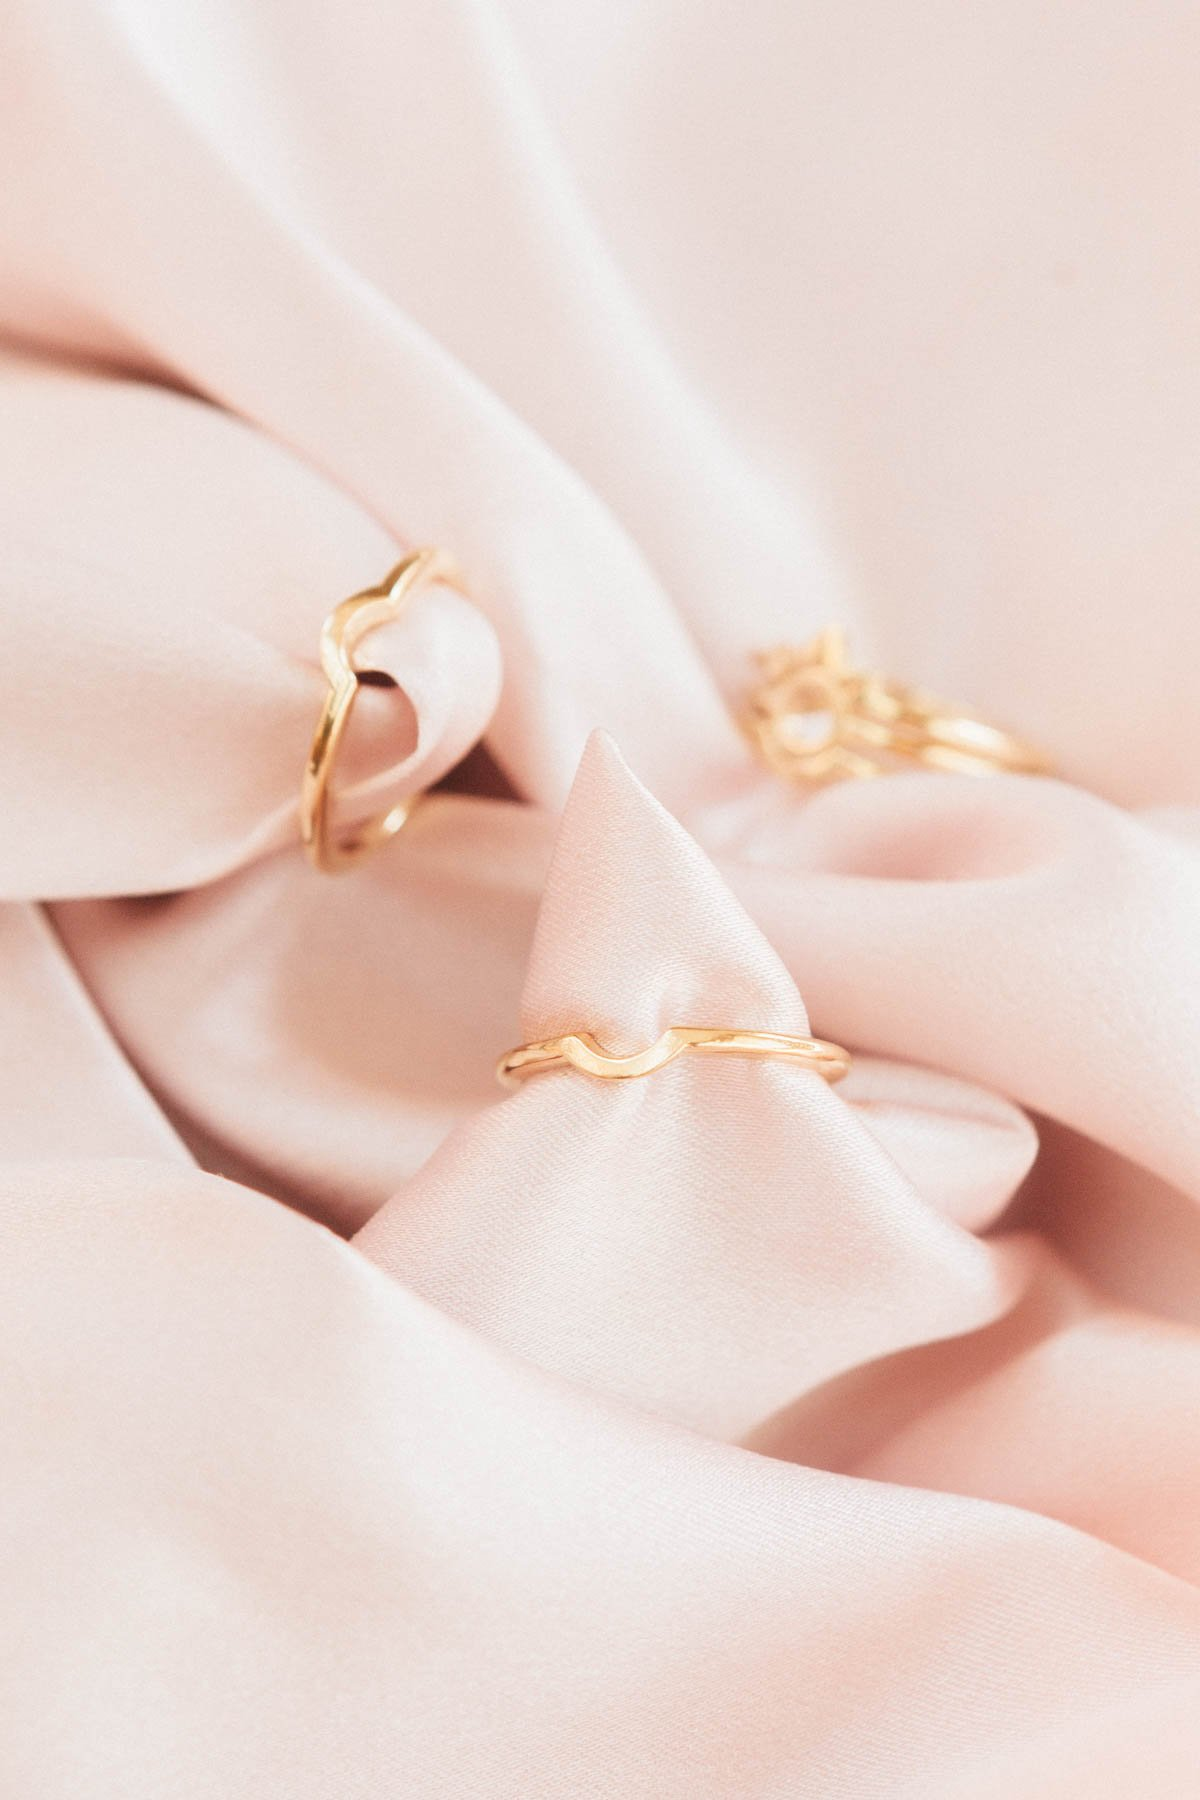 Image of the gold Half Sphere Rings against blush fabric.